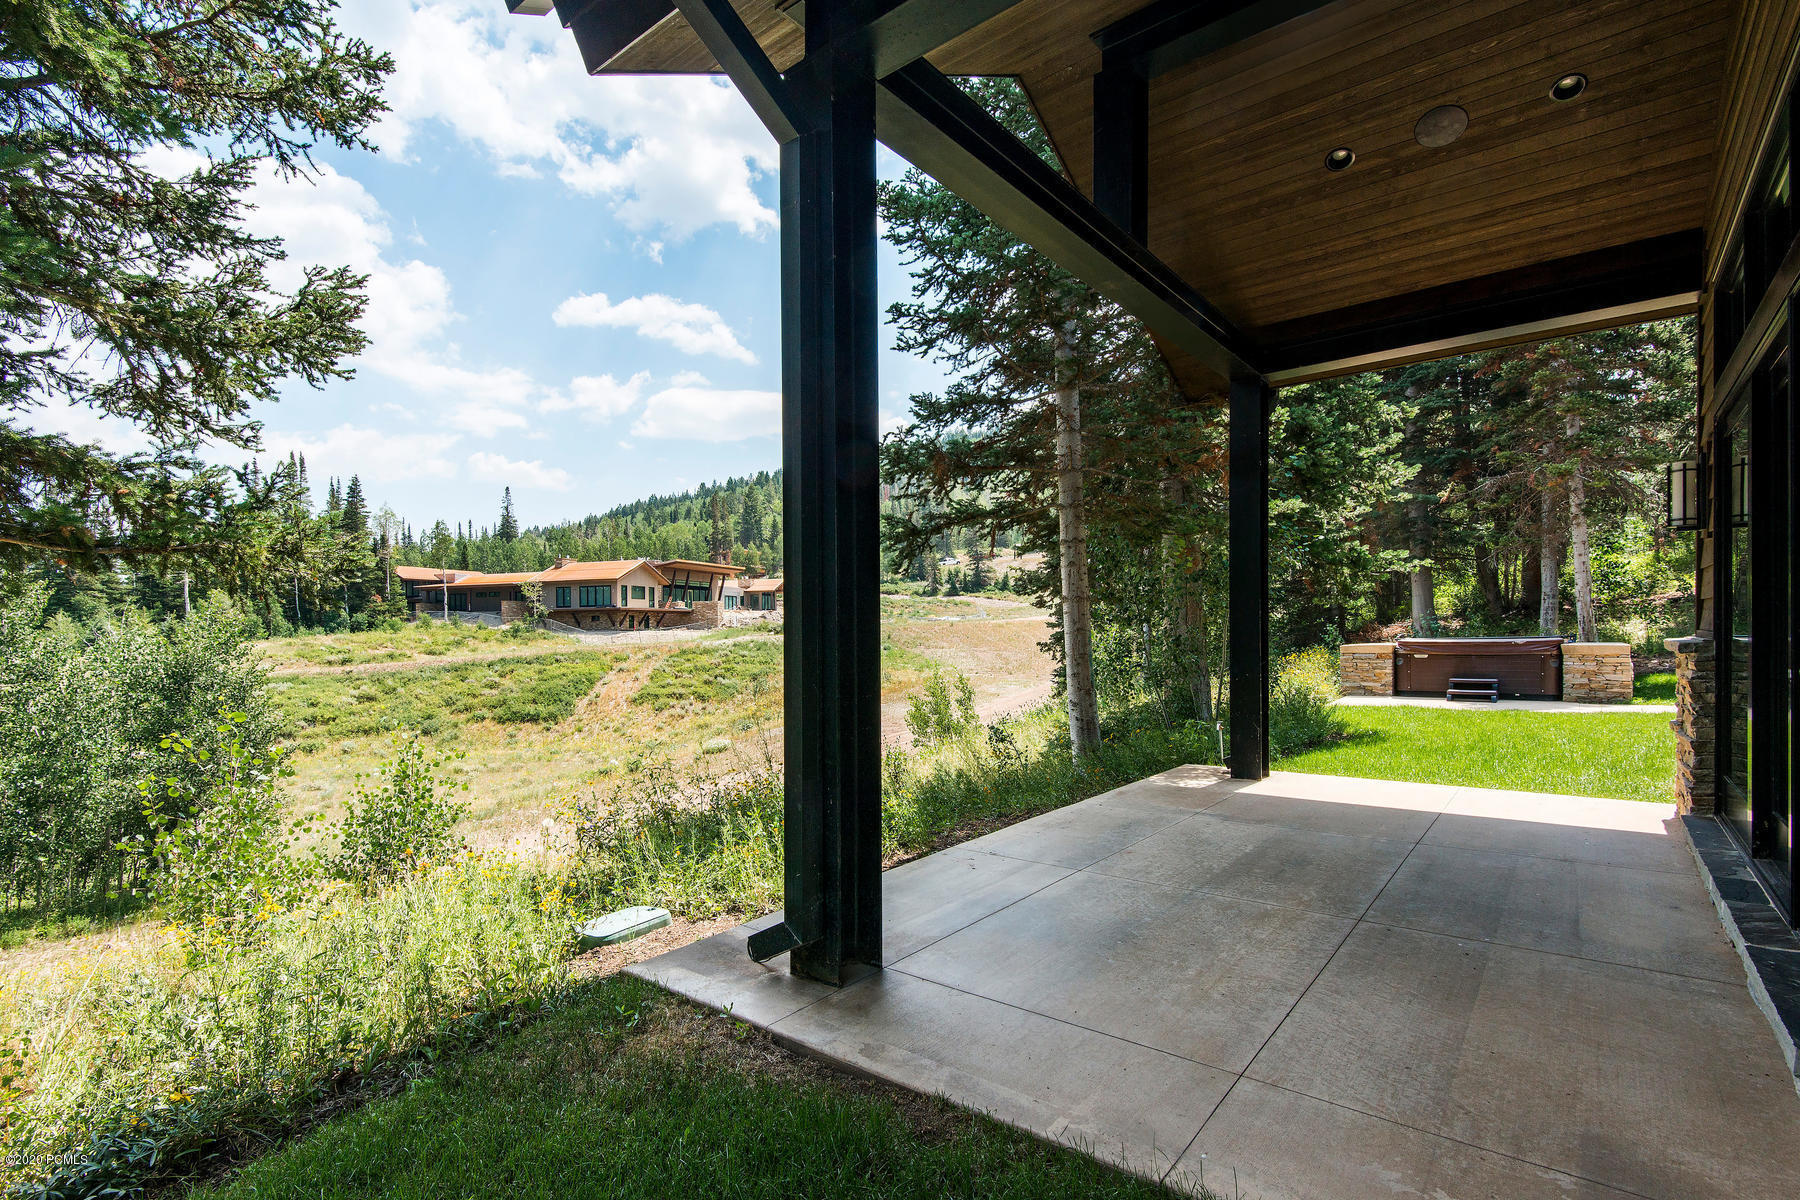 209 White Pine Canyon Rd, Park City, Utah 84060, 6 Bedrooms Bedrooms, ,7 BathroomsBathrooms,Single Family,For Sale,White Pine Canyon Rd,20190109112430415765000000